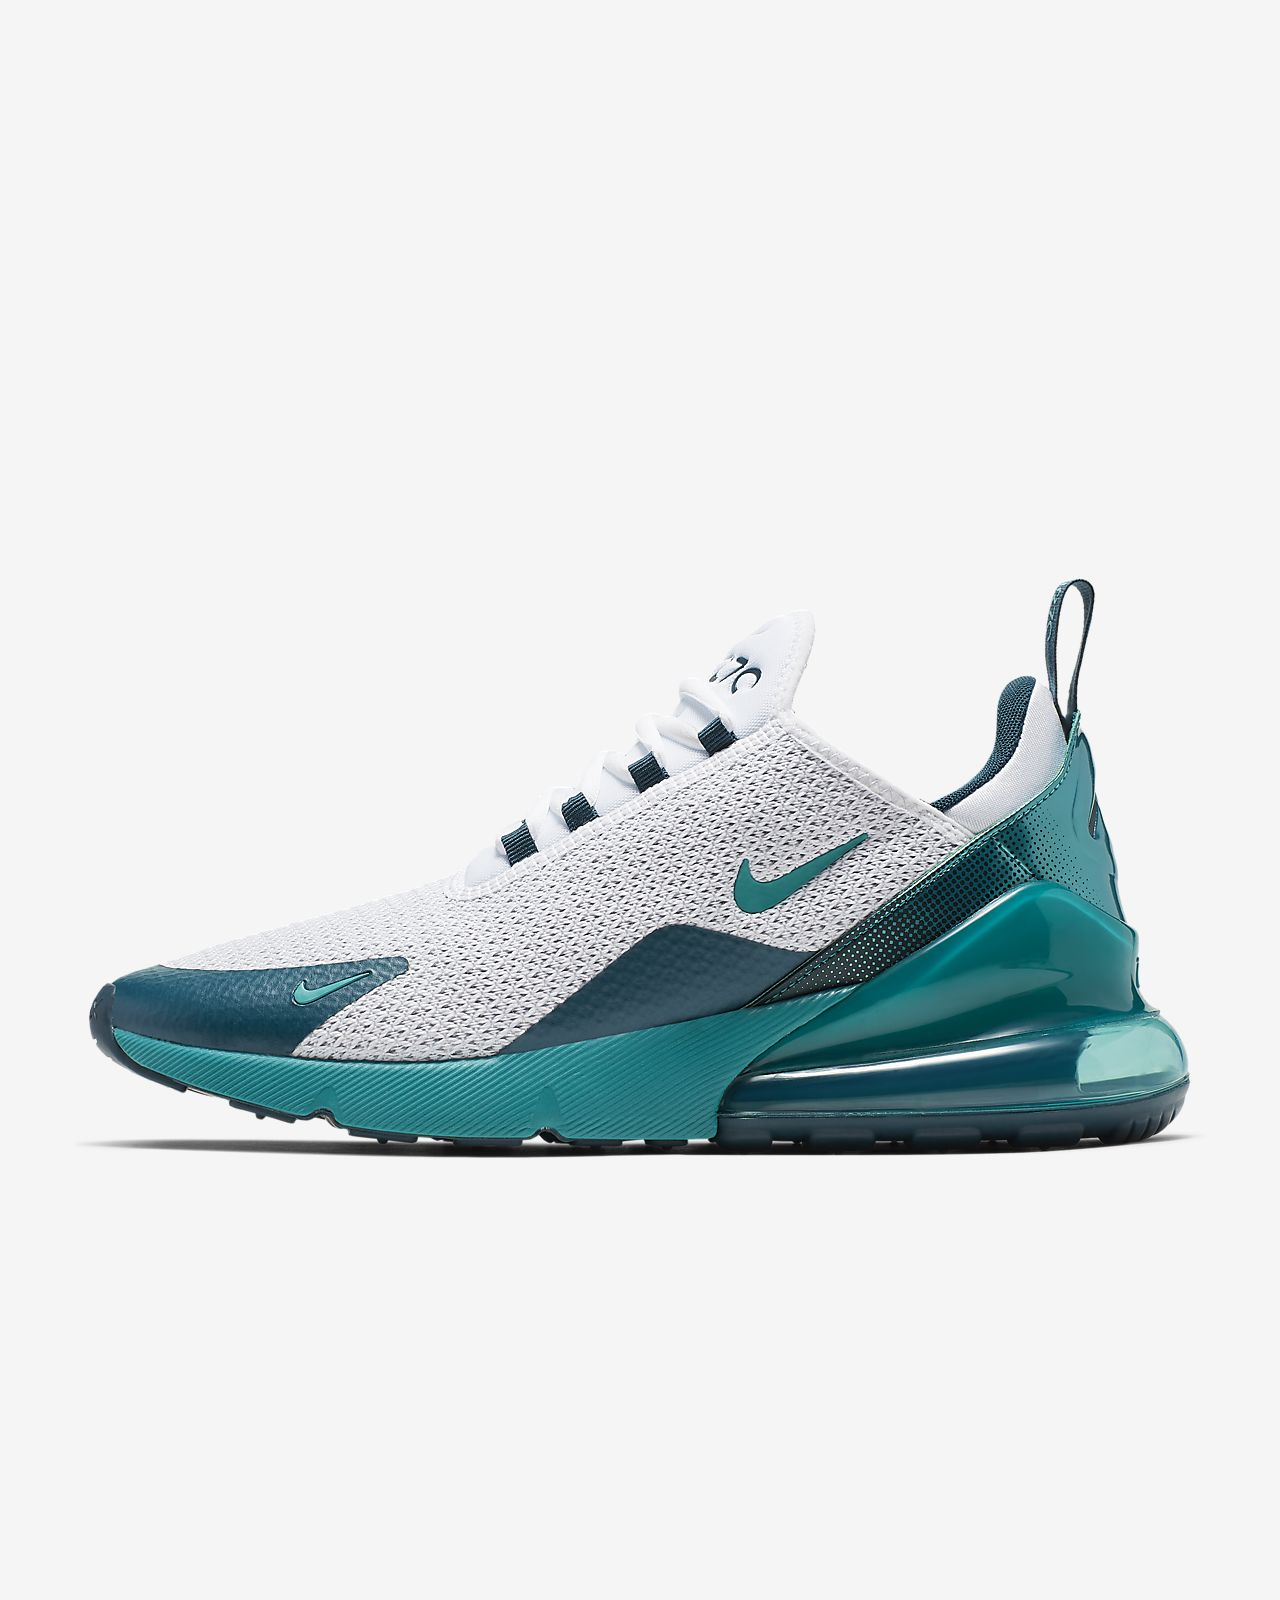 detailed look 7540e de84f Nike Air Max 270 SE Men's Shoe